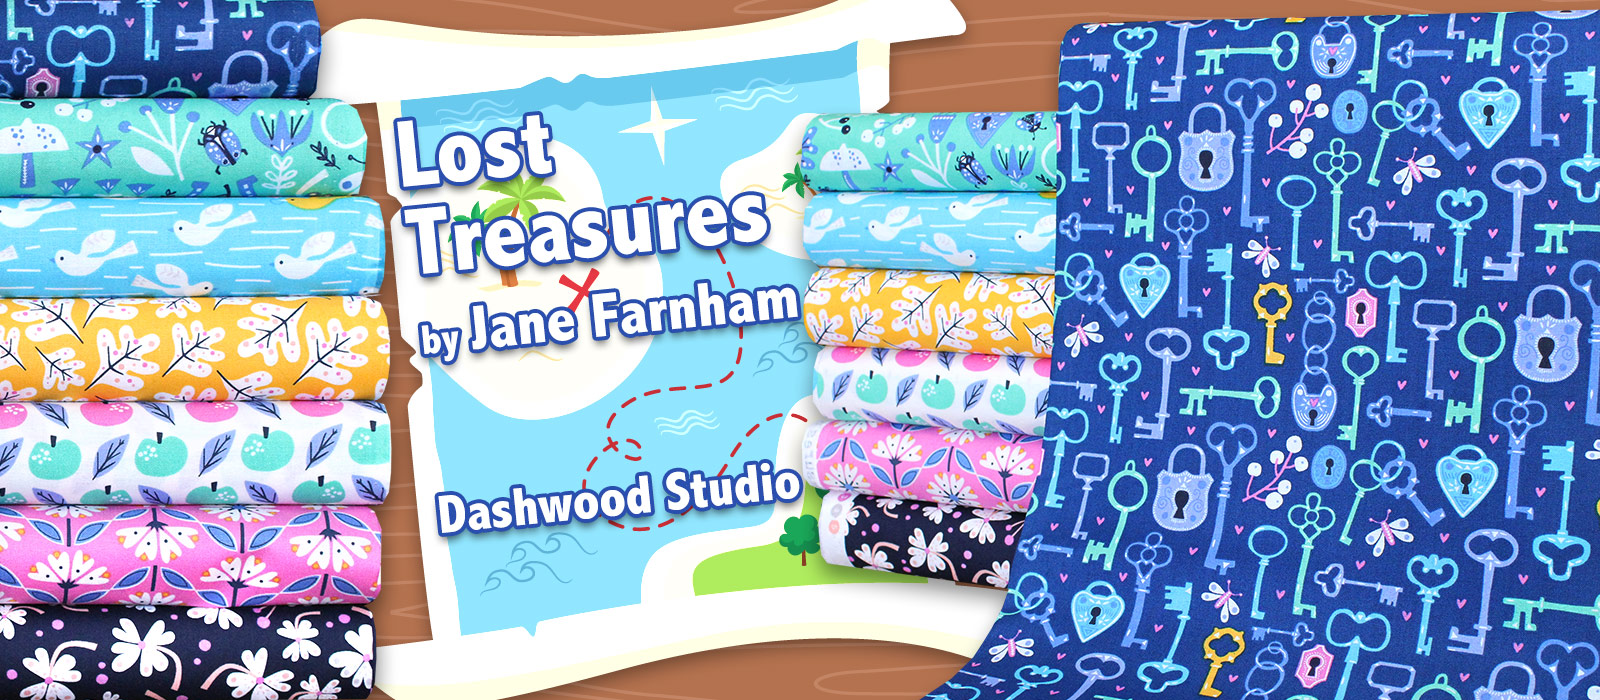 Dashwood Studio Lost Treasures Collection by Jane Farnham